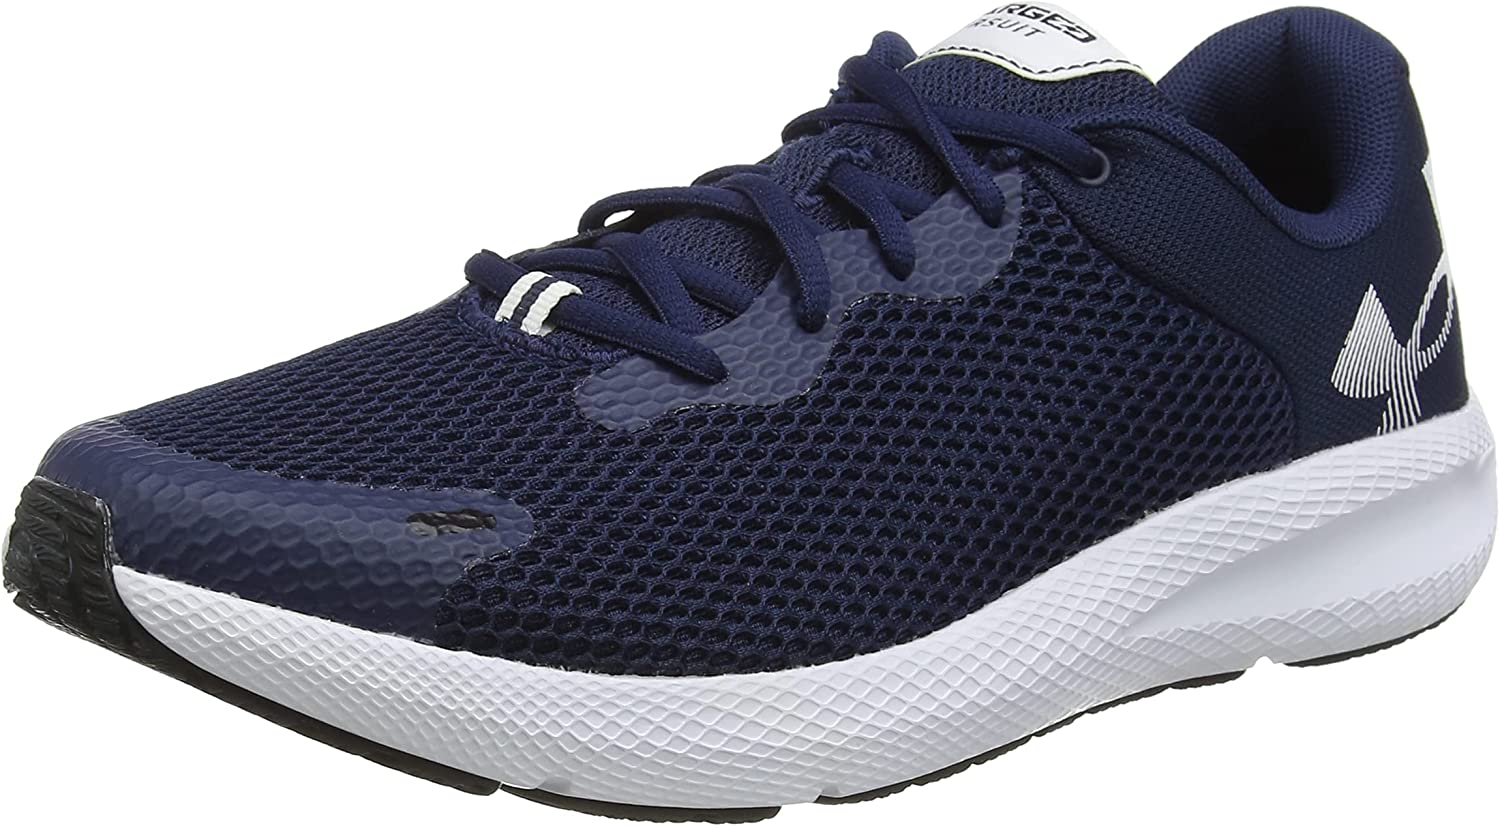 Under Armour Men's Charged Pursuit 2 Bl Running Shoe